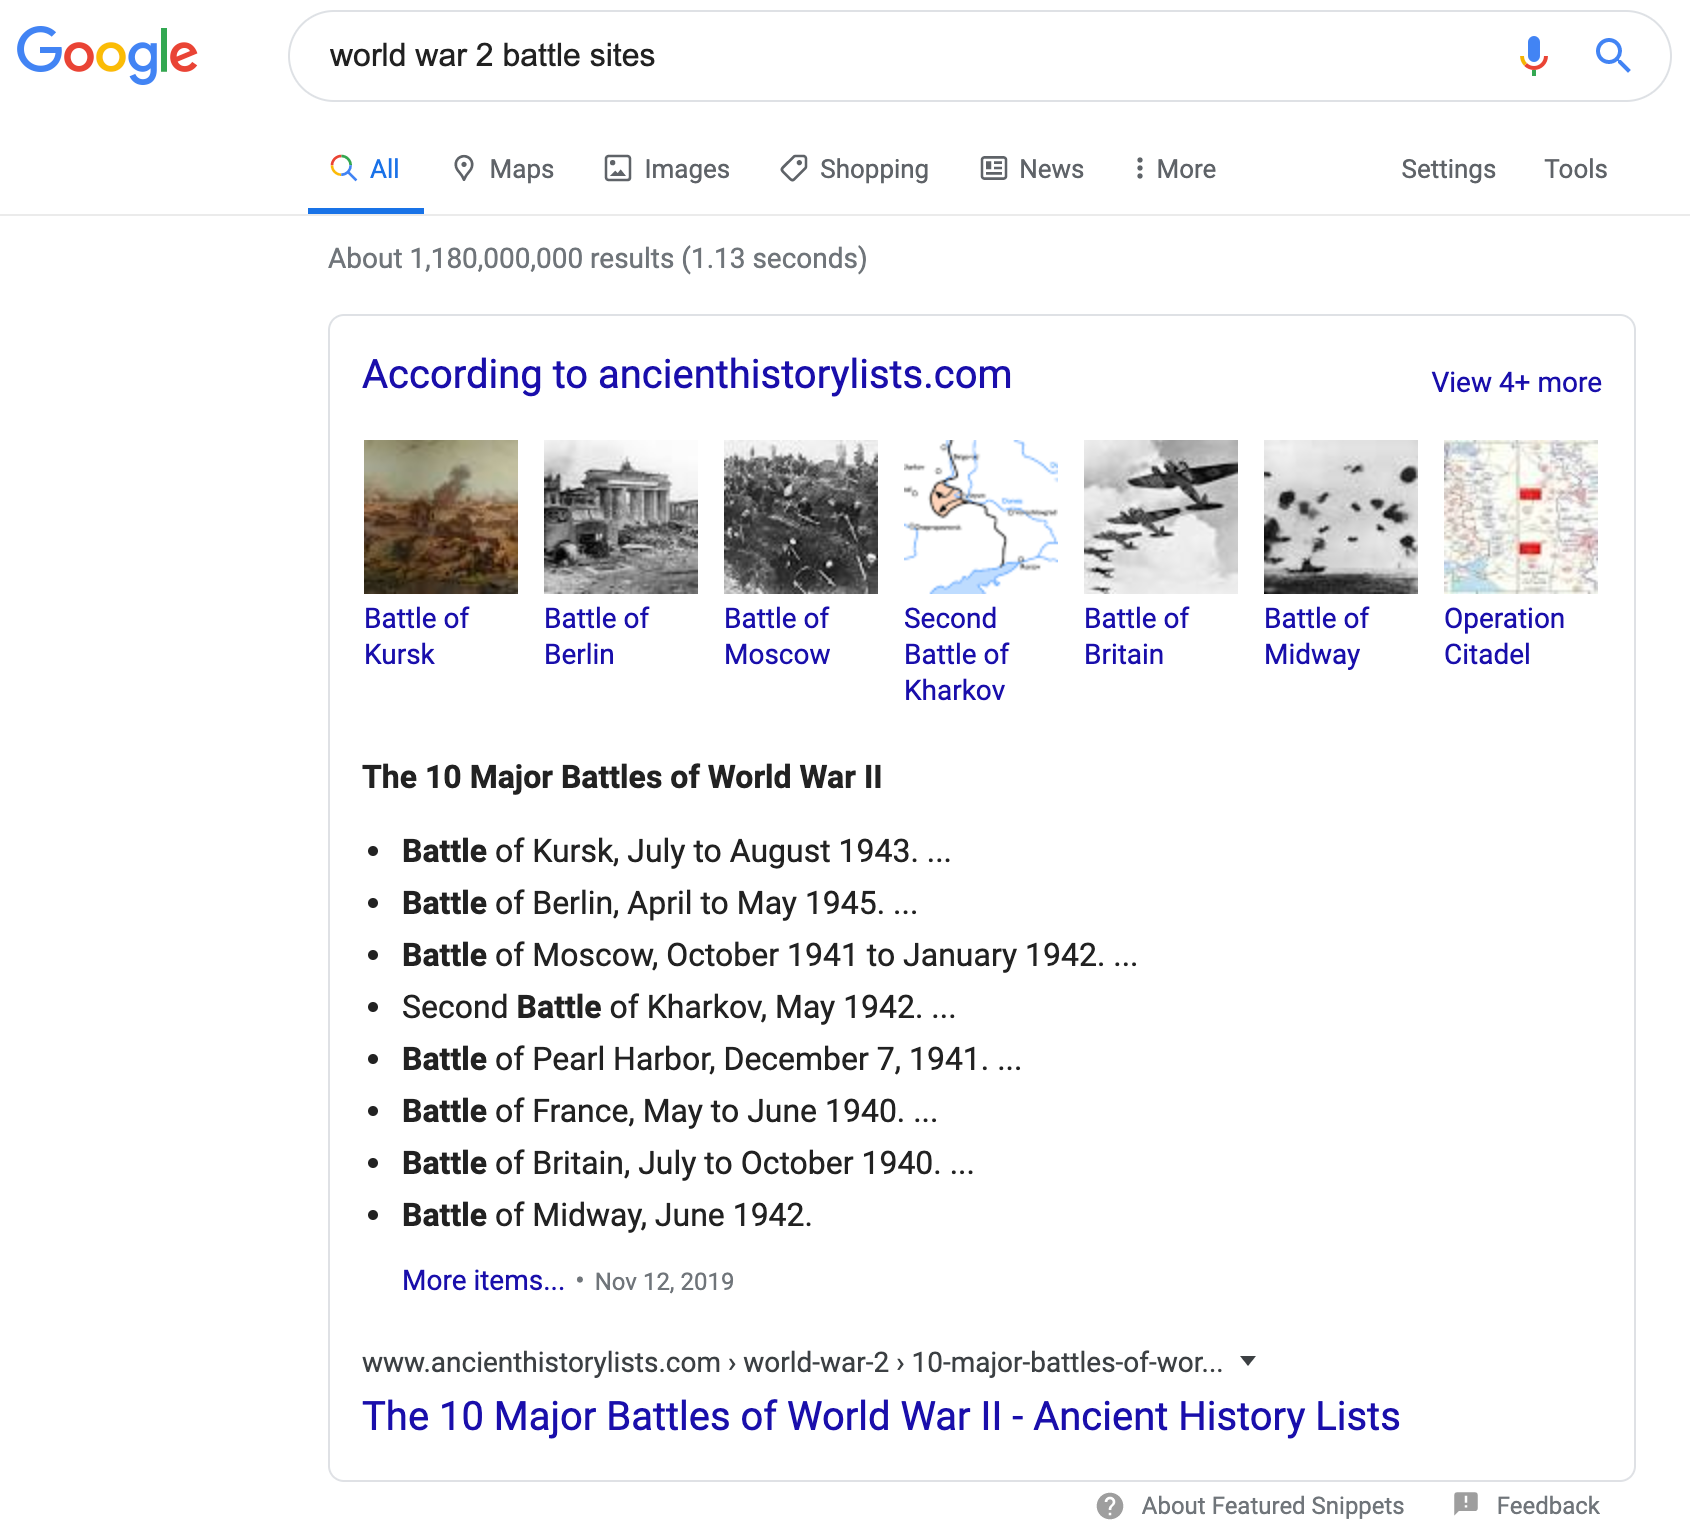 world war 2 battle sites - Google Search